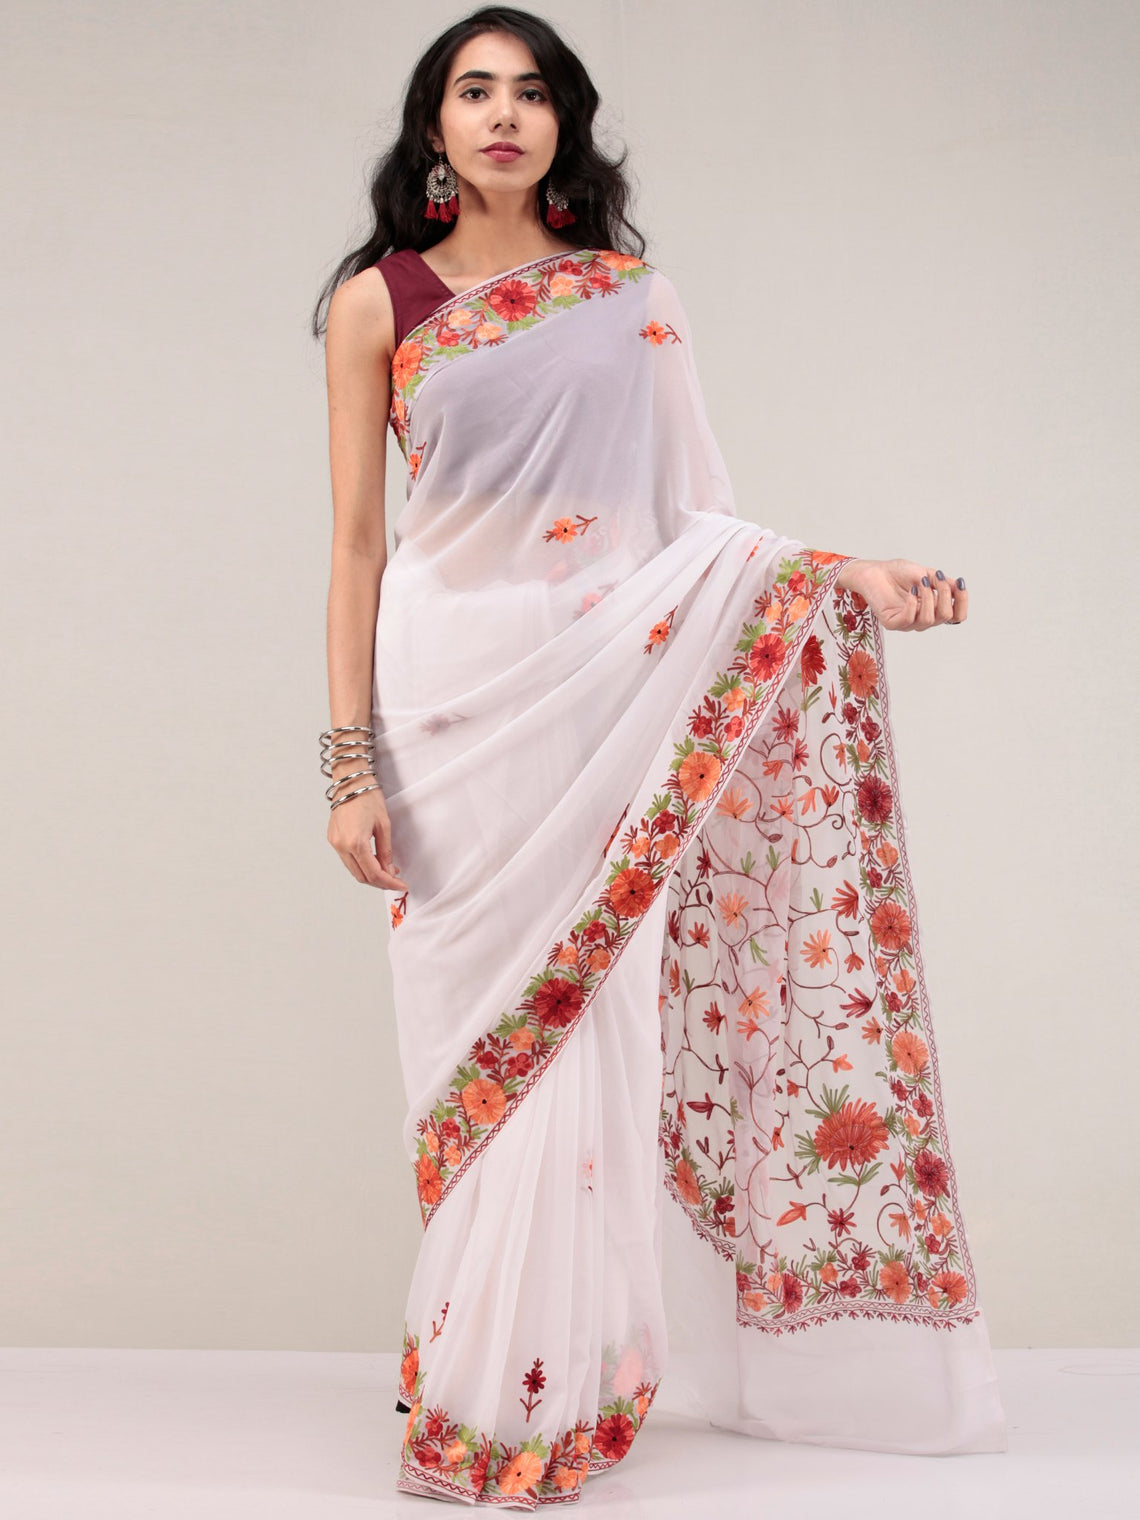 White Aari Embroidered Georgette Saree From Kashmir - S031704627